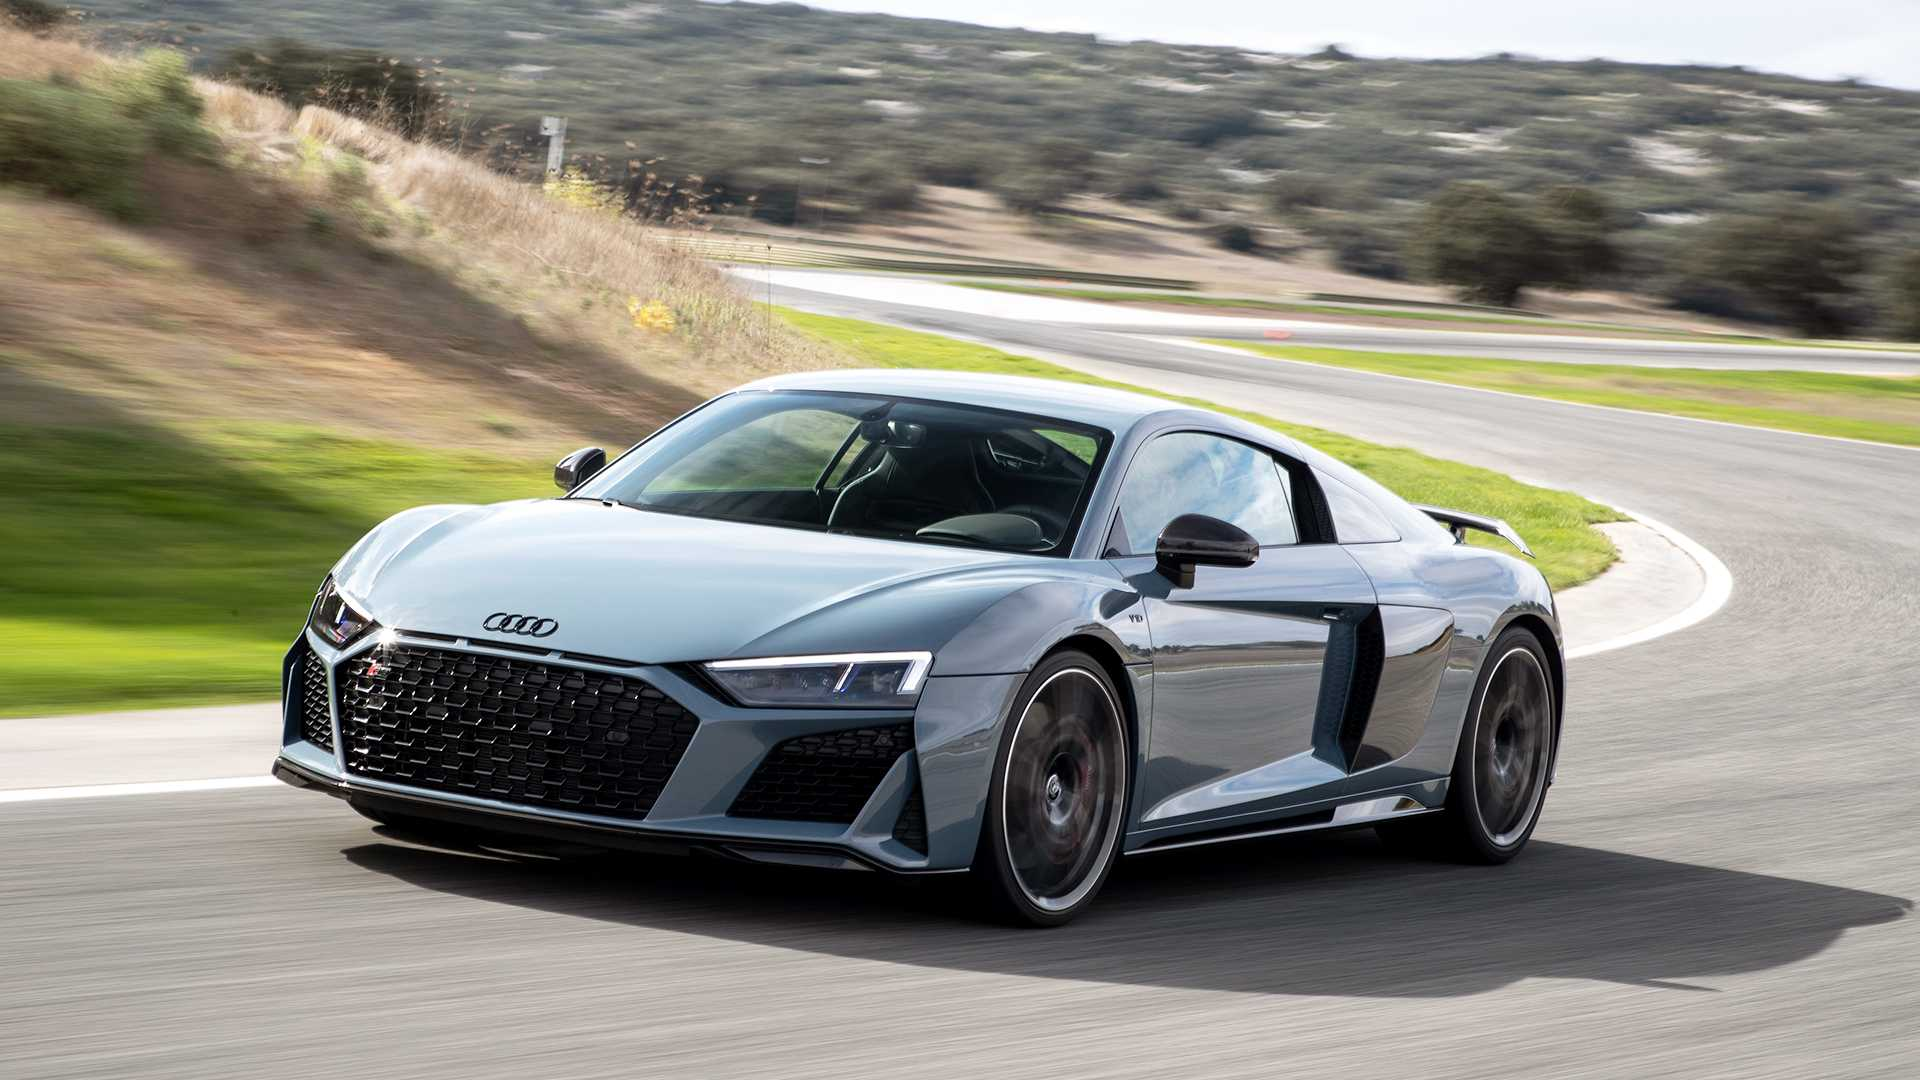 83 Great New Audi 2019 Pre Order New Review Spy Shoot for New Audi 2019 Pre Order New Review